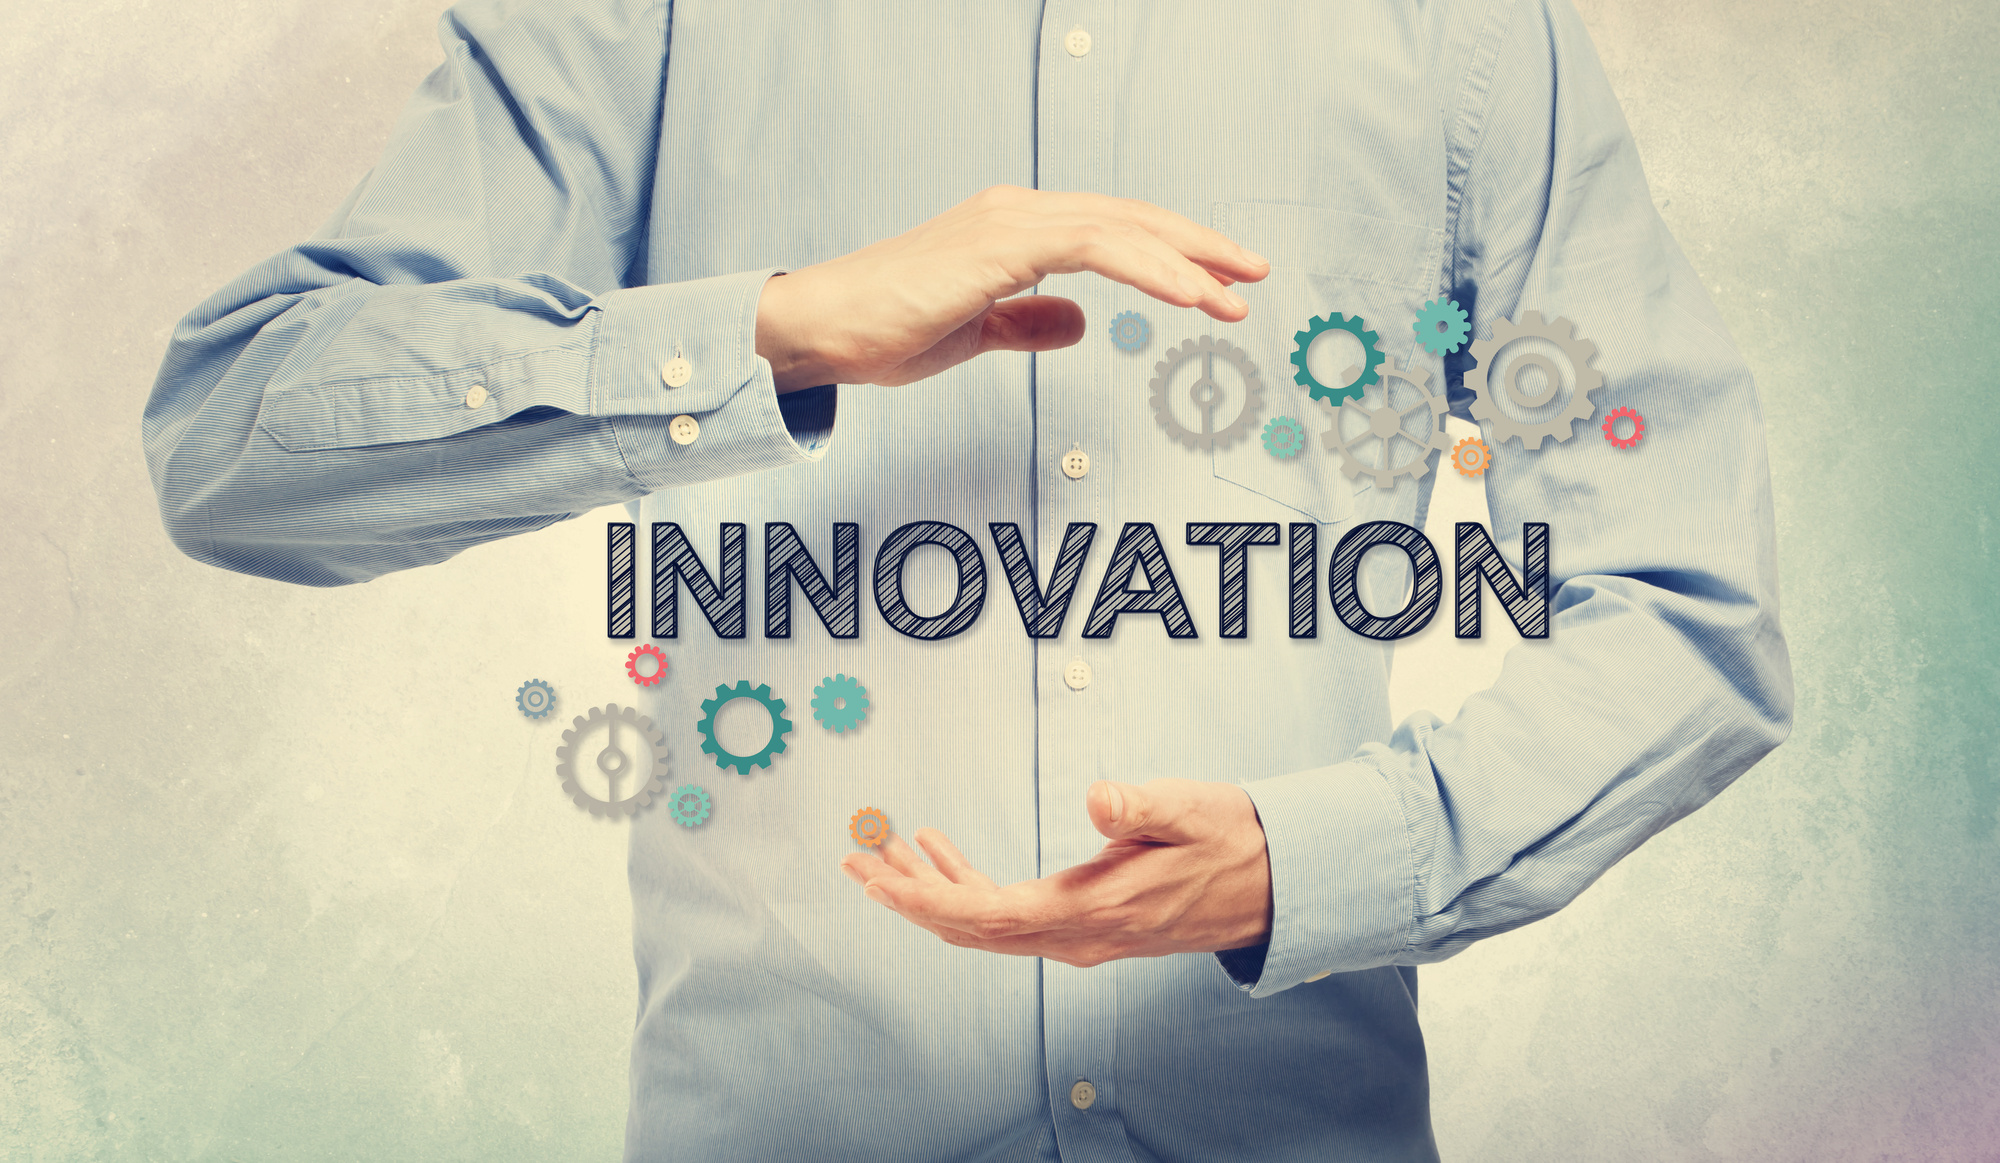 innovation text